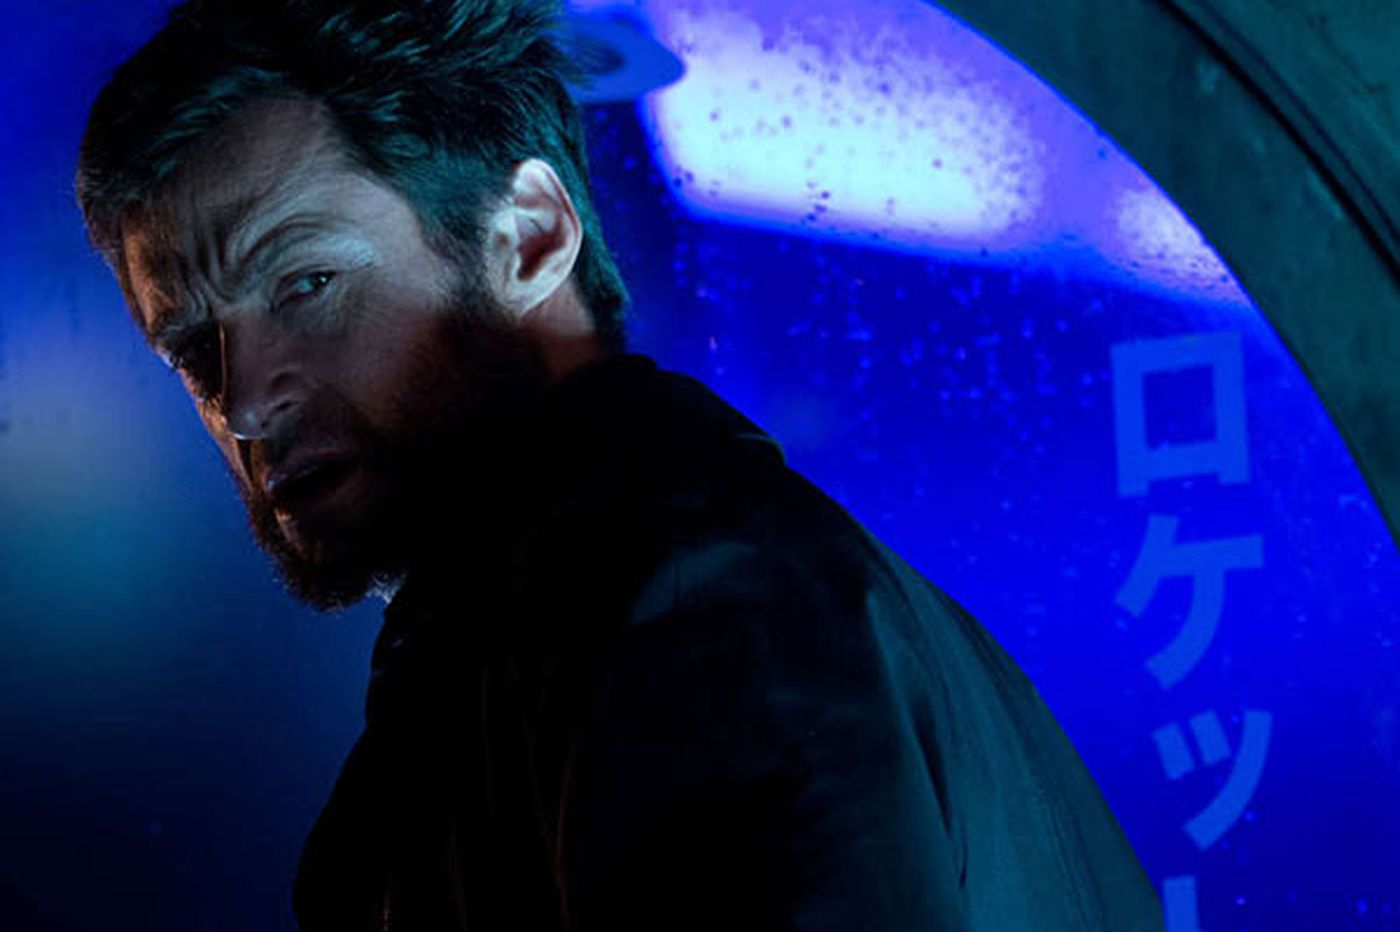 'The Wolverine': Jackman's claws are cause for applause